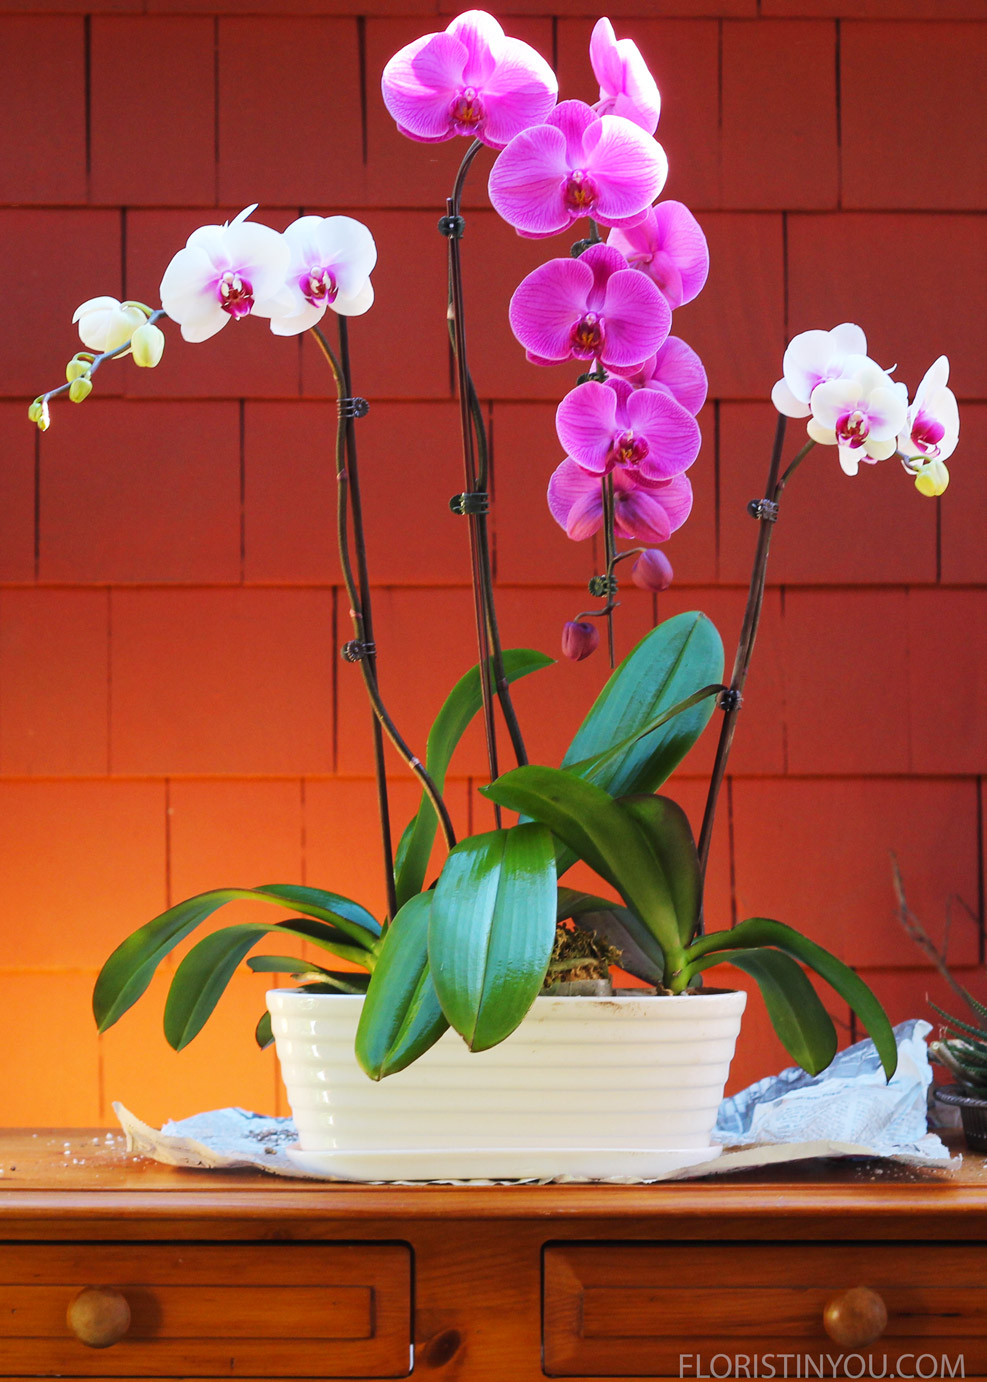 Tile end orchids out to each side a little so you have a V shape.